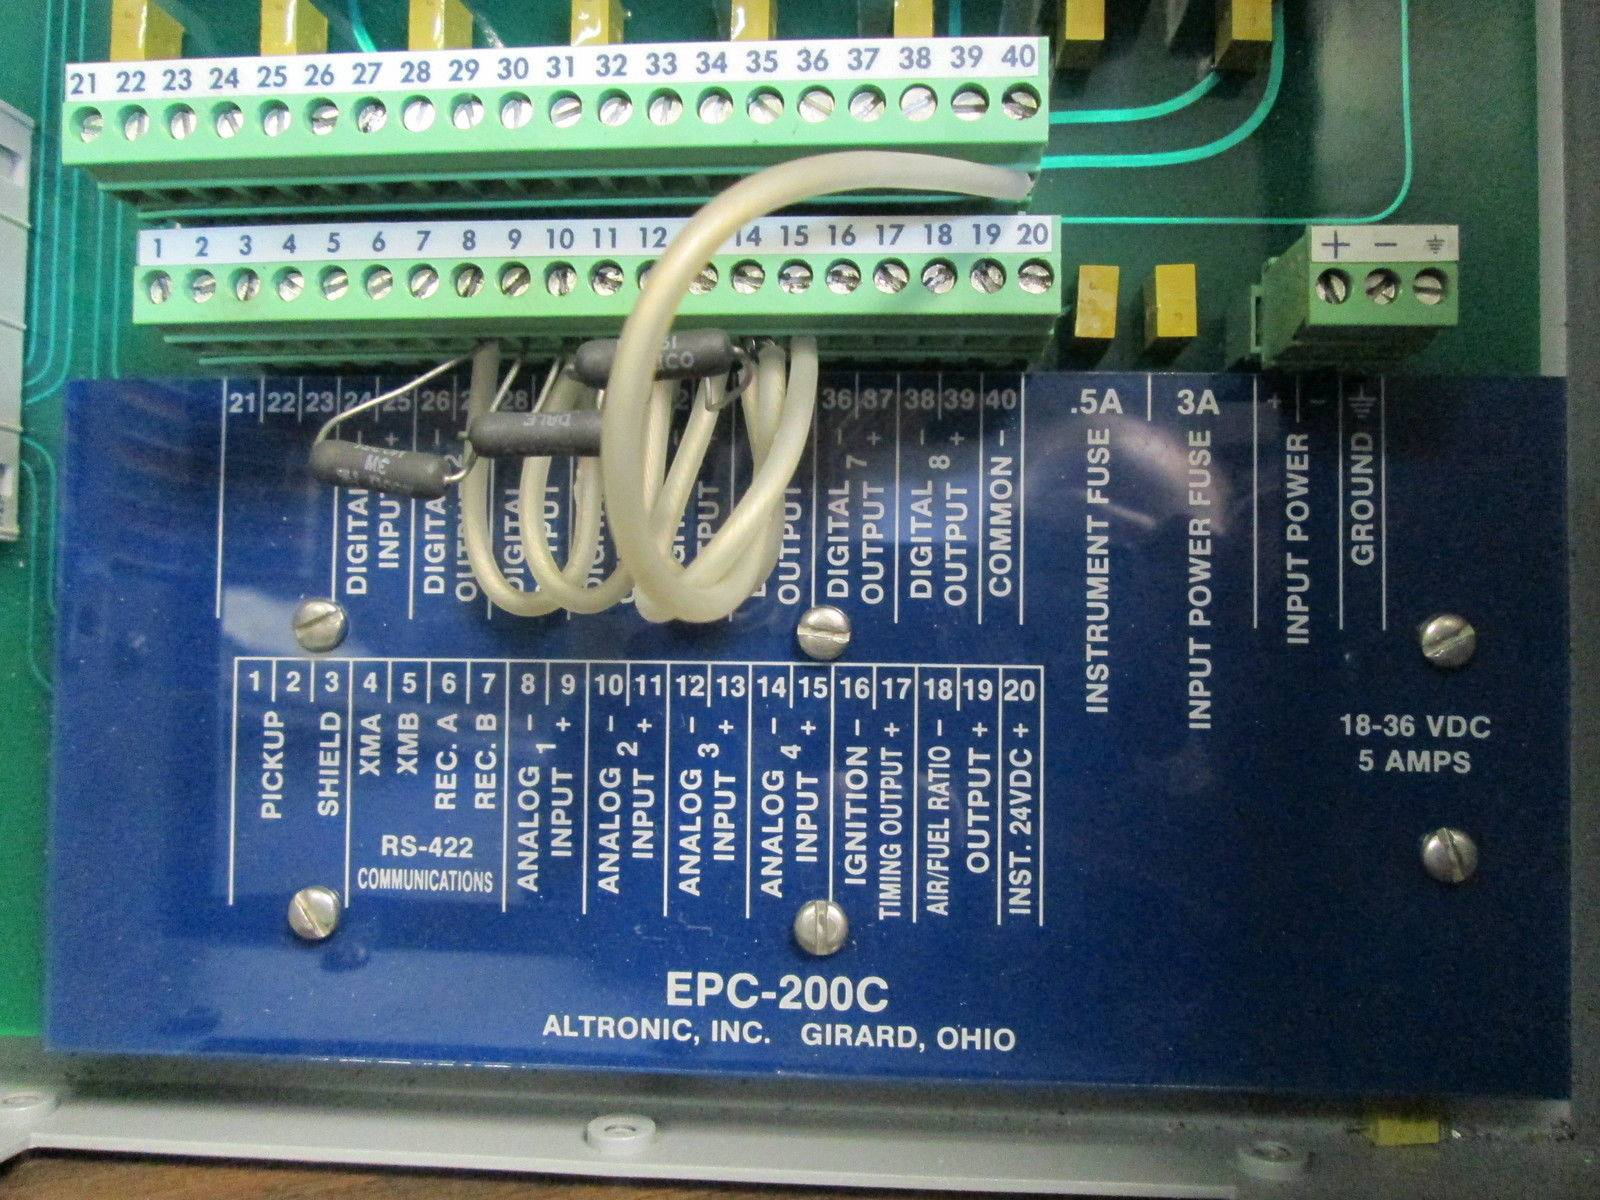 altronic epc c epc engine performance controller epcc altronic epc 200c epc engine performance controller epc200c operator interface ebi0413 0 river city industrial